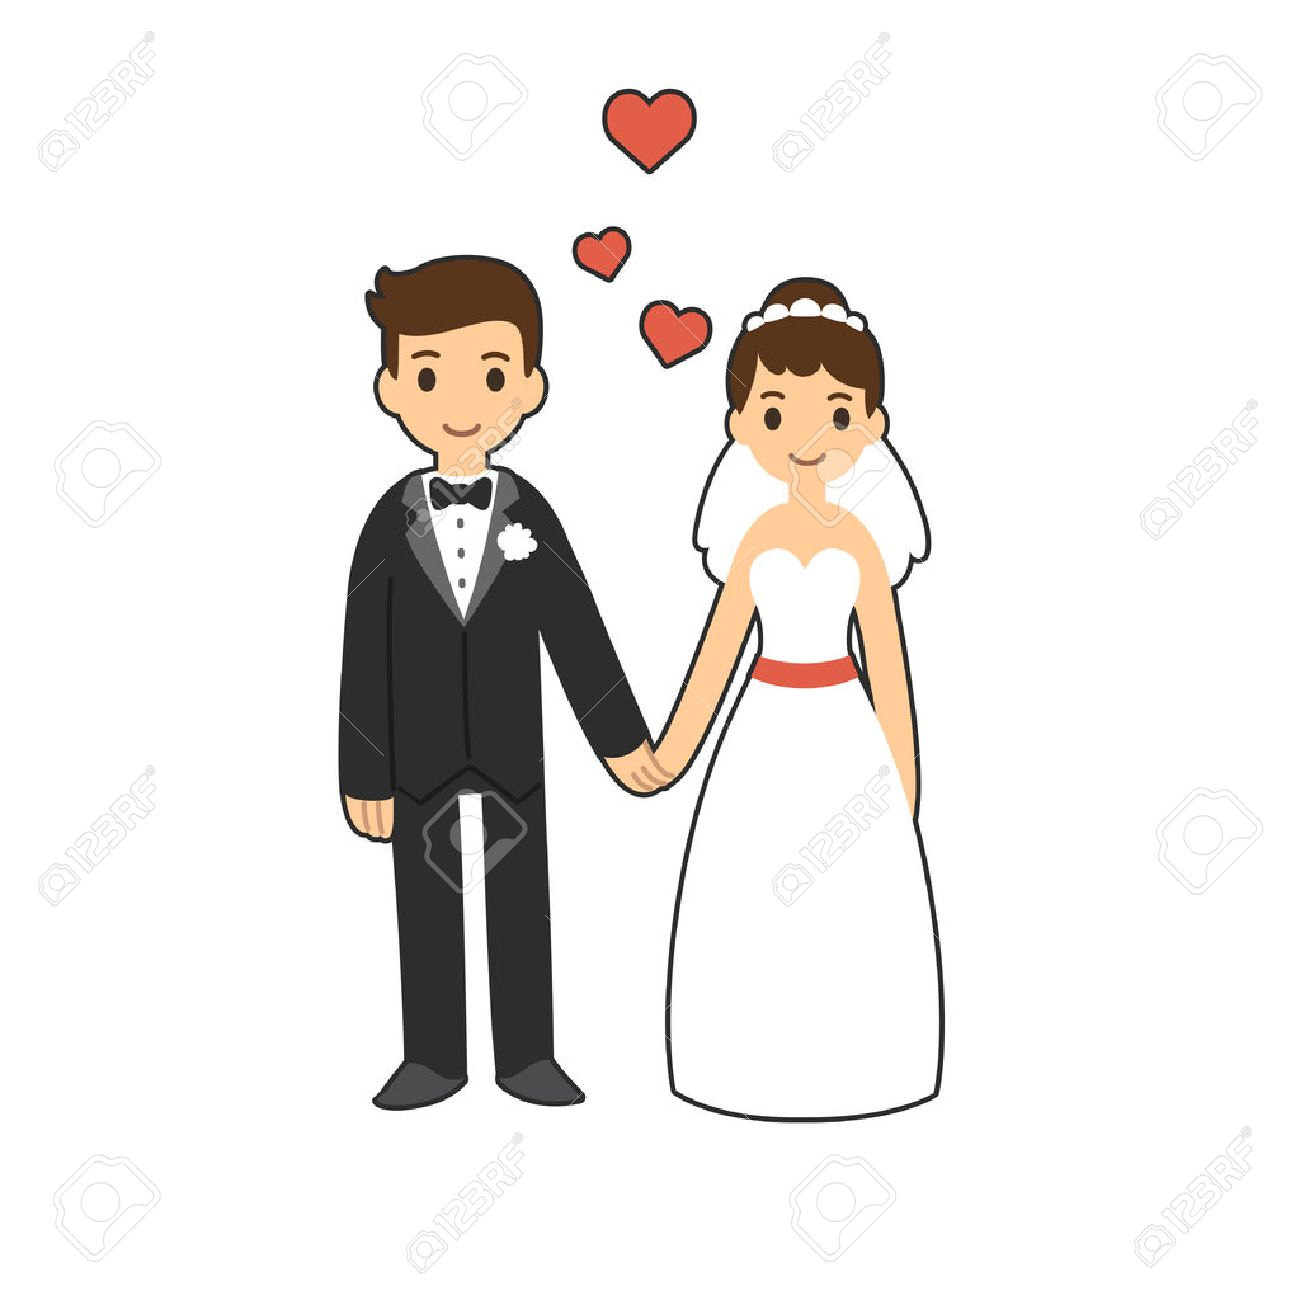 cute cartoon wedding couple holding hands royalty free cliparts rh 123rf com anime cartoon couple holding hands cartoon pictures of couples holding hands